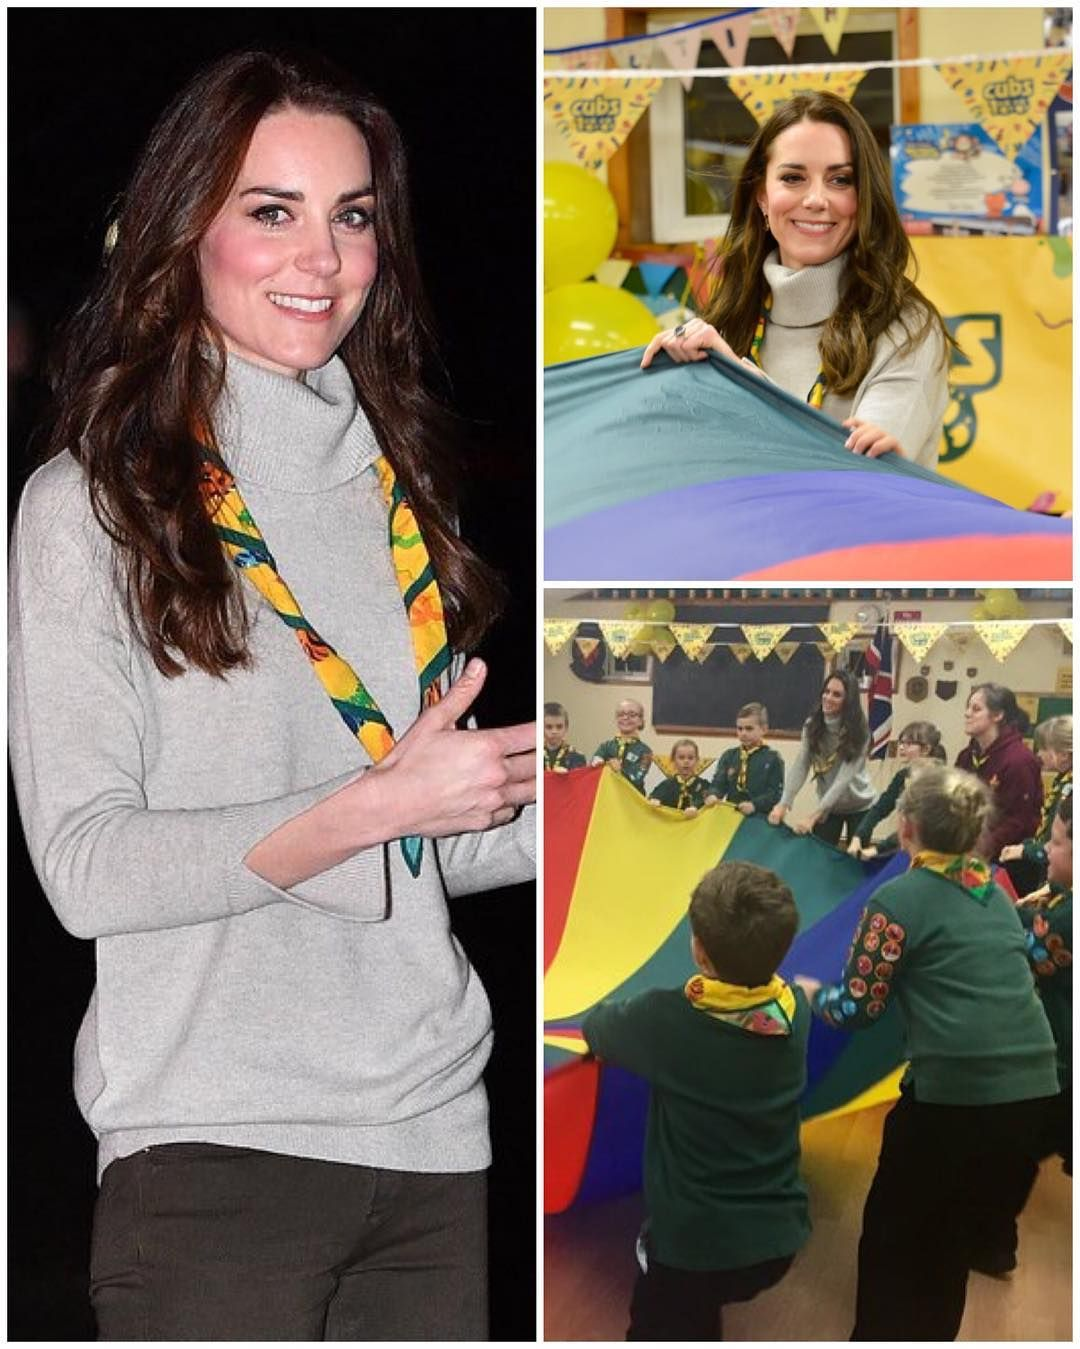 The Duchess of Cambridge has arrived at a special Cub Scout Pack meeting with Cubs from the Kings Lynn District, just a few miles from her Norfolk home, to celebrate 100 years of Cubs this evening. She joined in on a parachute game that builds teamwork and is now sitting down to ice some cupcakes!